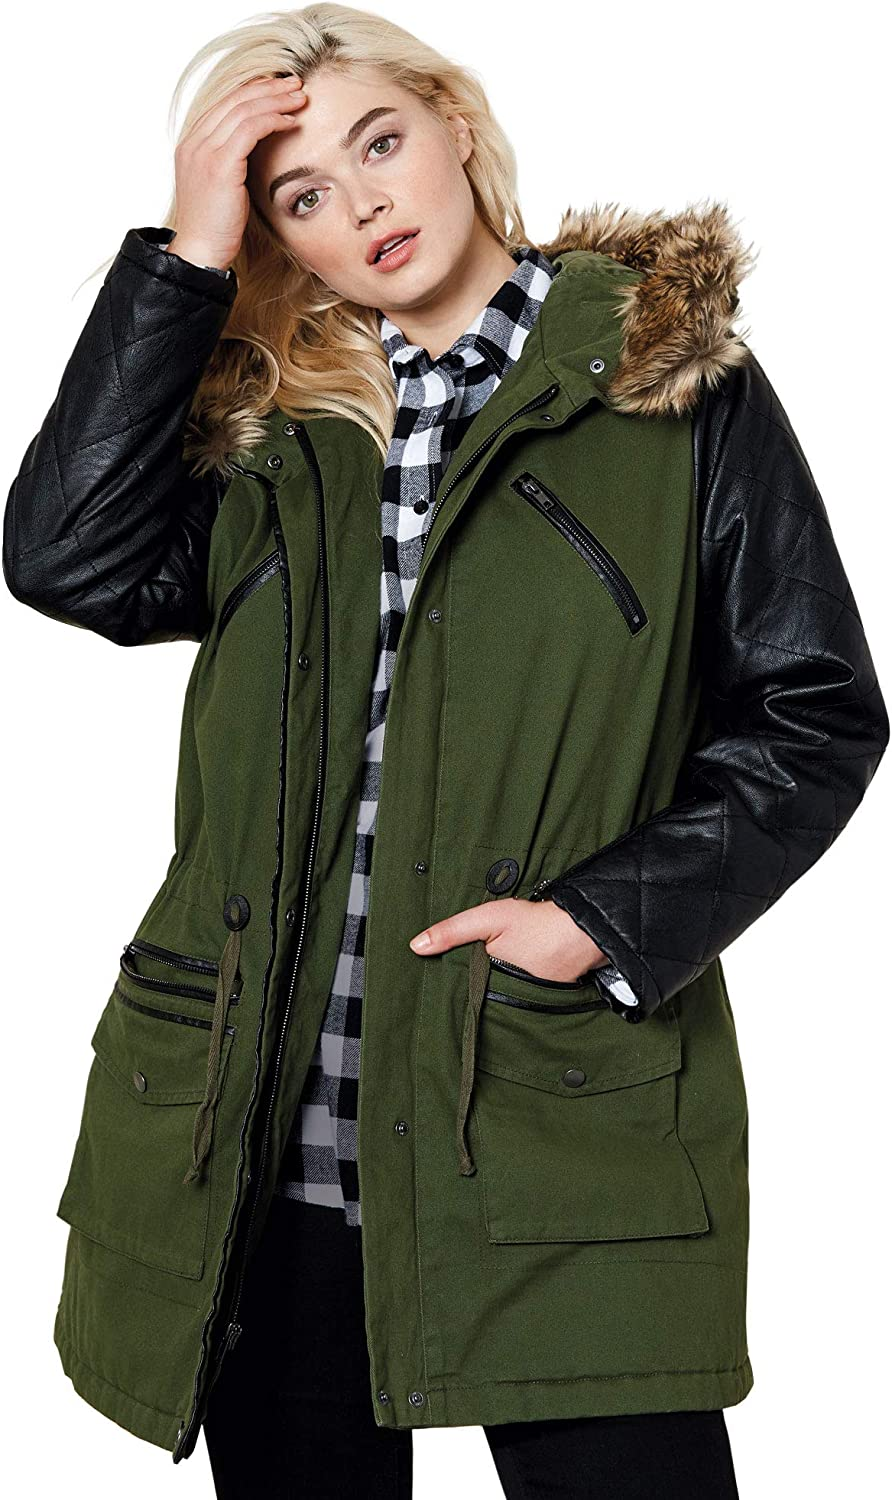 Free Shipping Cheap Bargain Gift ellos Women's Plus Size Popular shop is the lowest price challenge Quilted Faux Parka Jacket Sleeve Leather